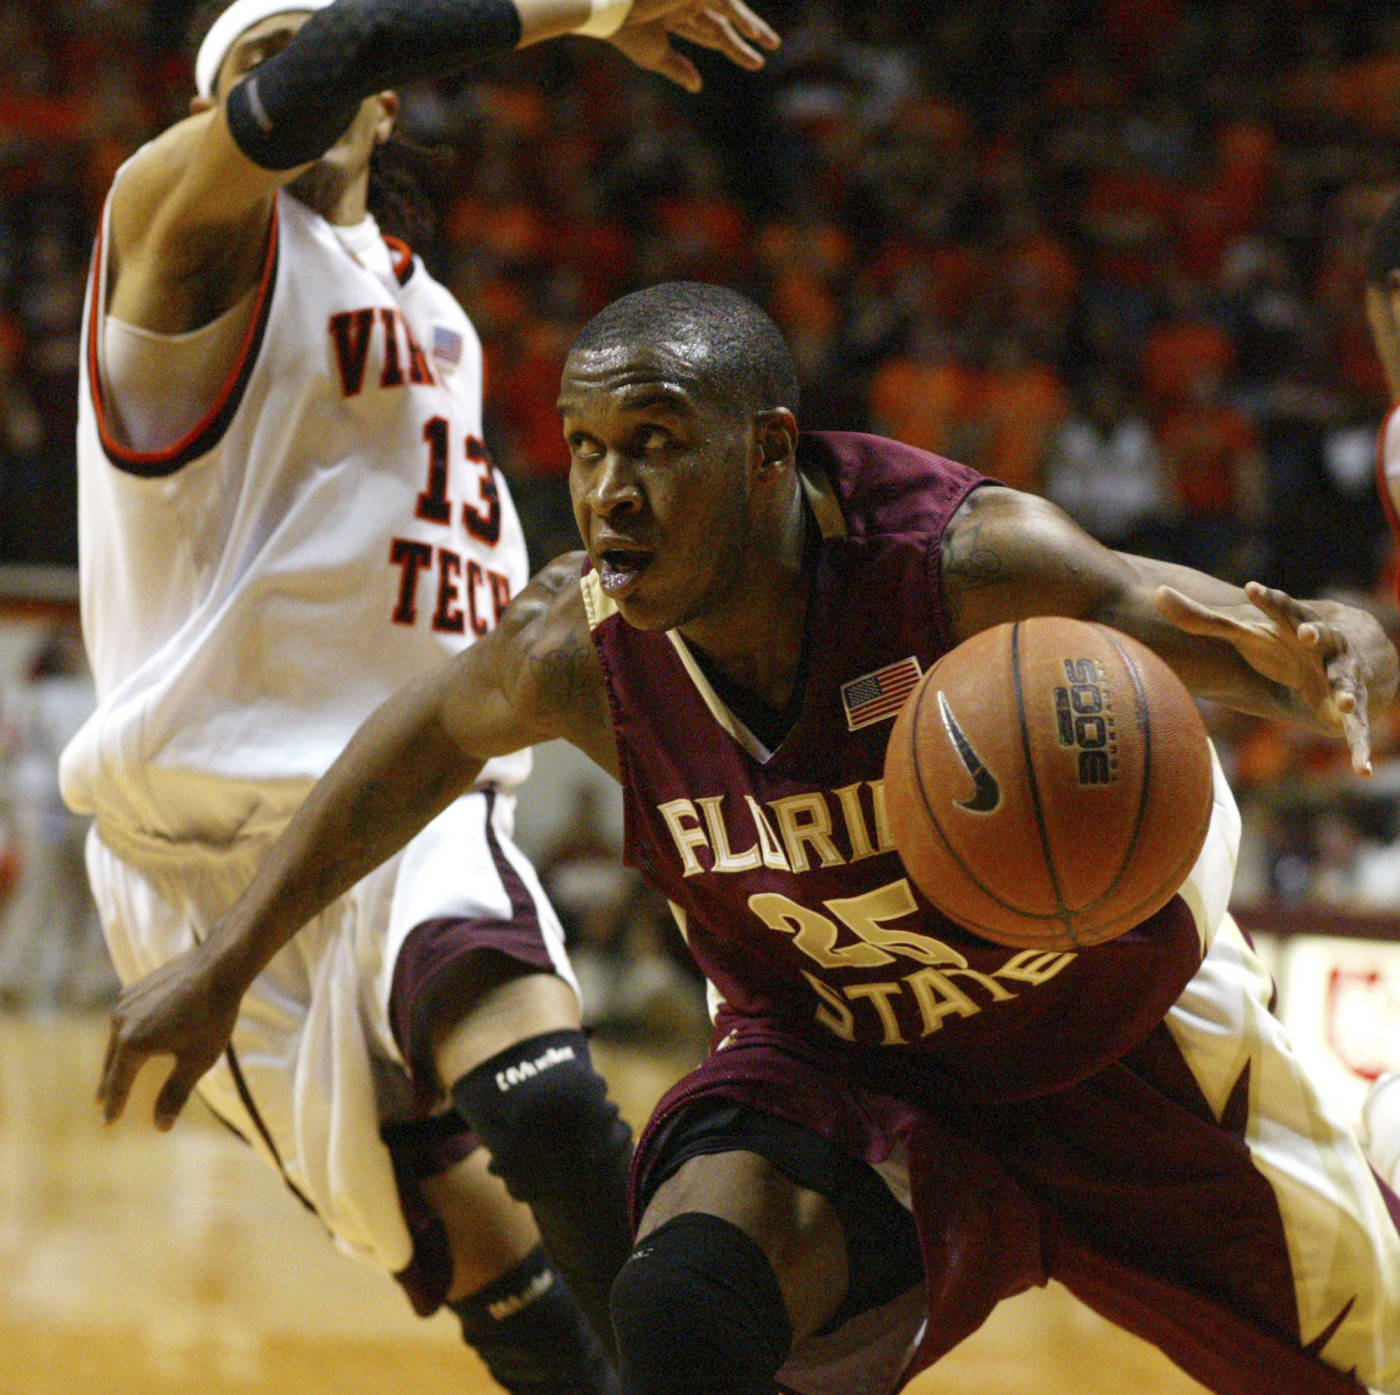 Florida State's Jason Rich (25) looks to score past Virginia Tech's Deron Washington, left, during the first half of a college basketball game in Blacksburg, Va., Tuesday, Jan. 29, 2008.